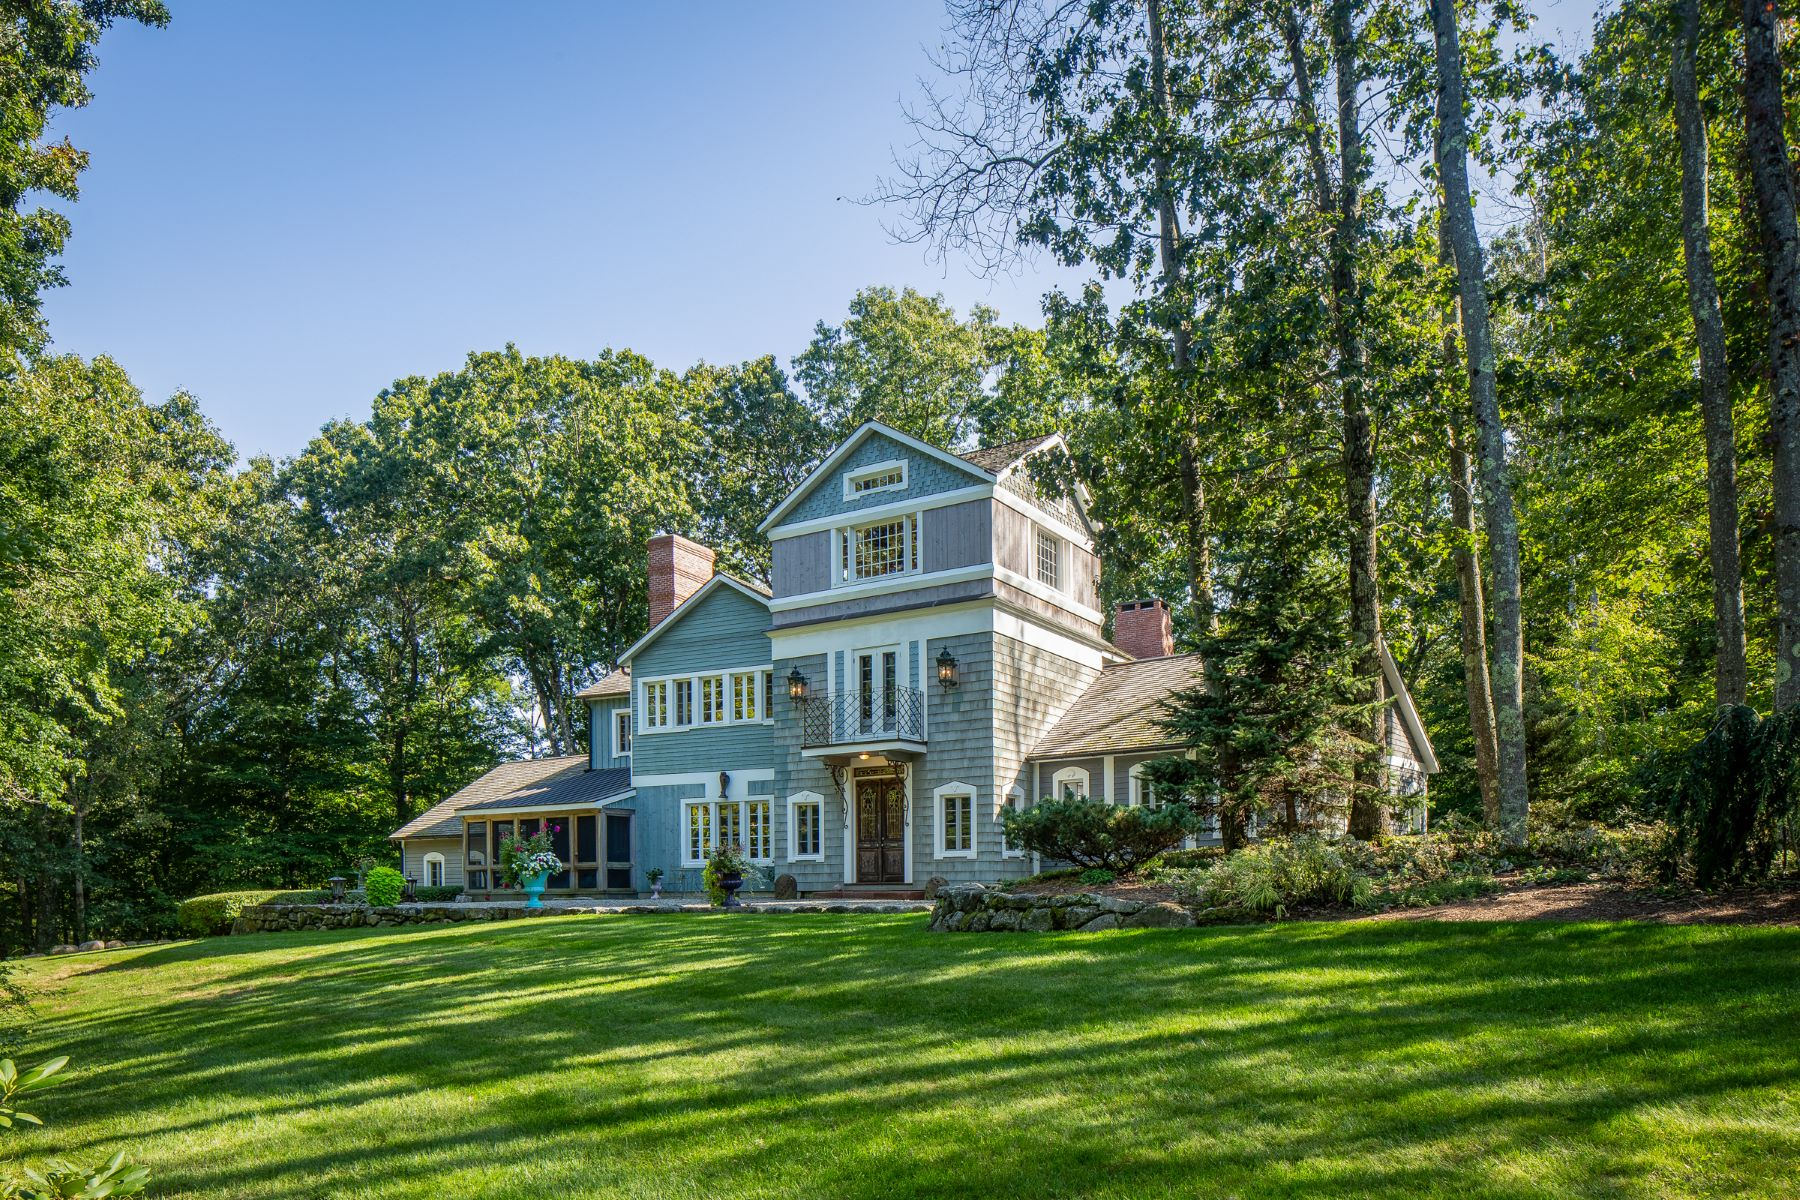 Single Family Homes for Sale at Imaginary Farms 51 Bear Hill Road New Milford, Connecticut 06776 United States